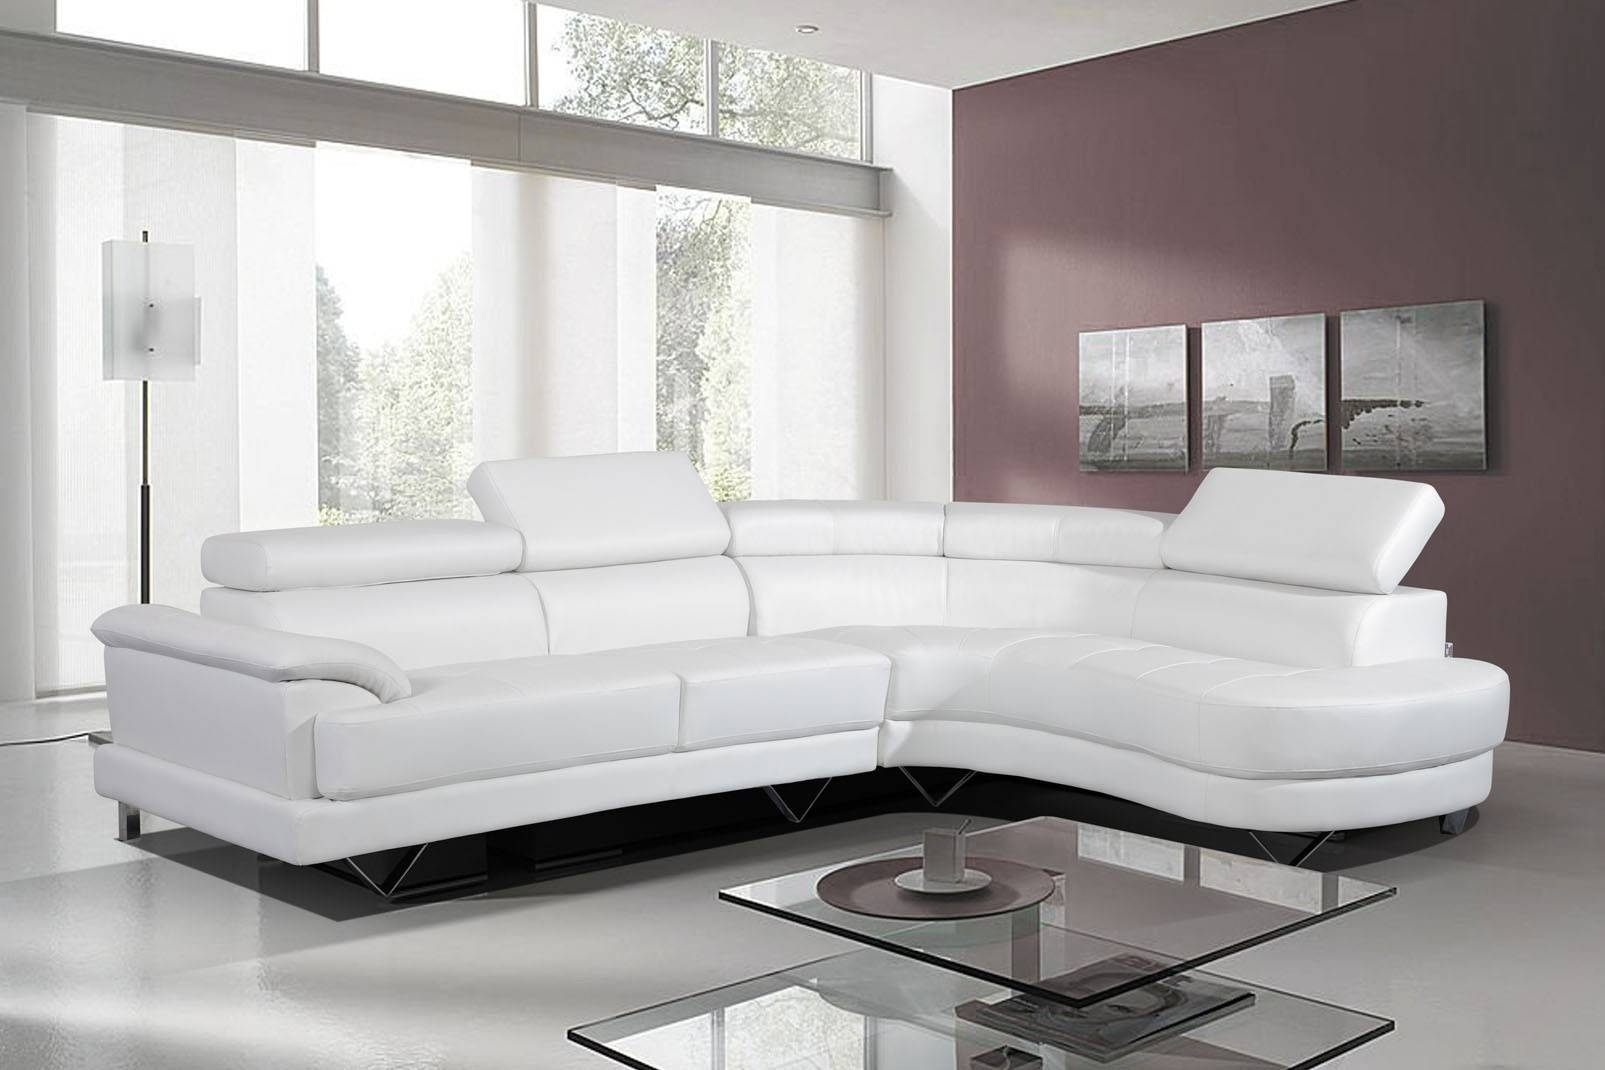 Living Room ~ Leather Couches Modern Sectional Leather Couch White in White Leather Sofas (Image 11 of 30)